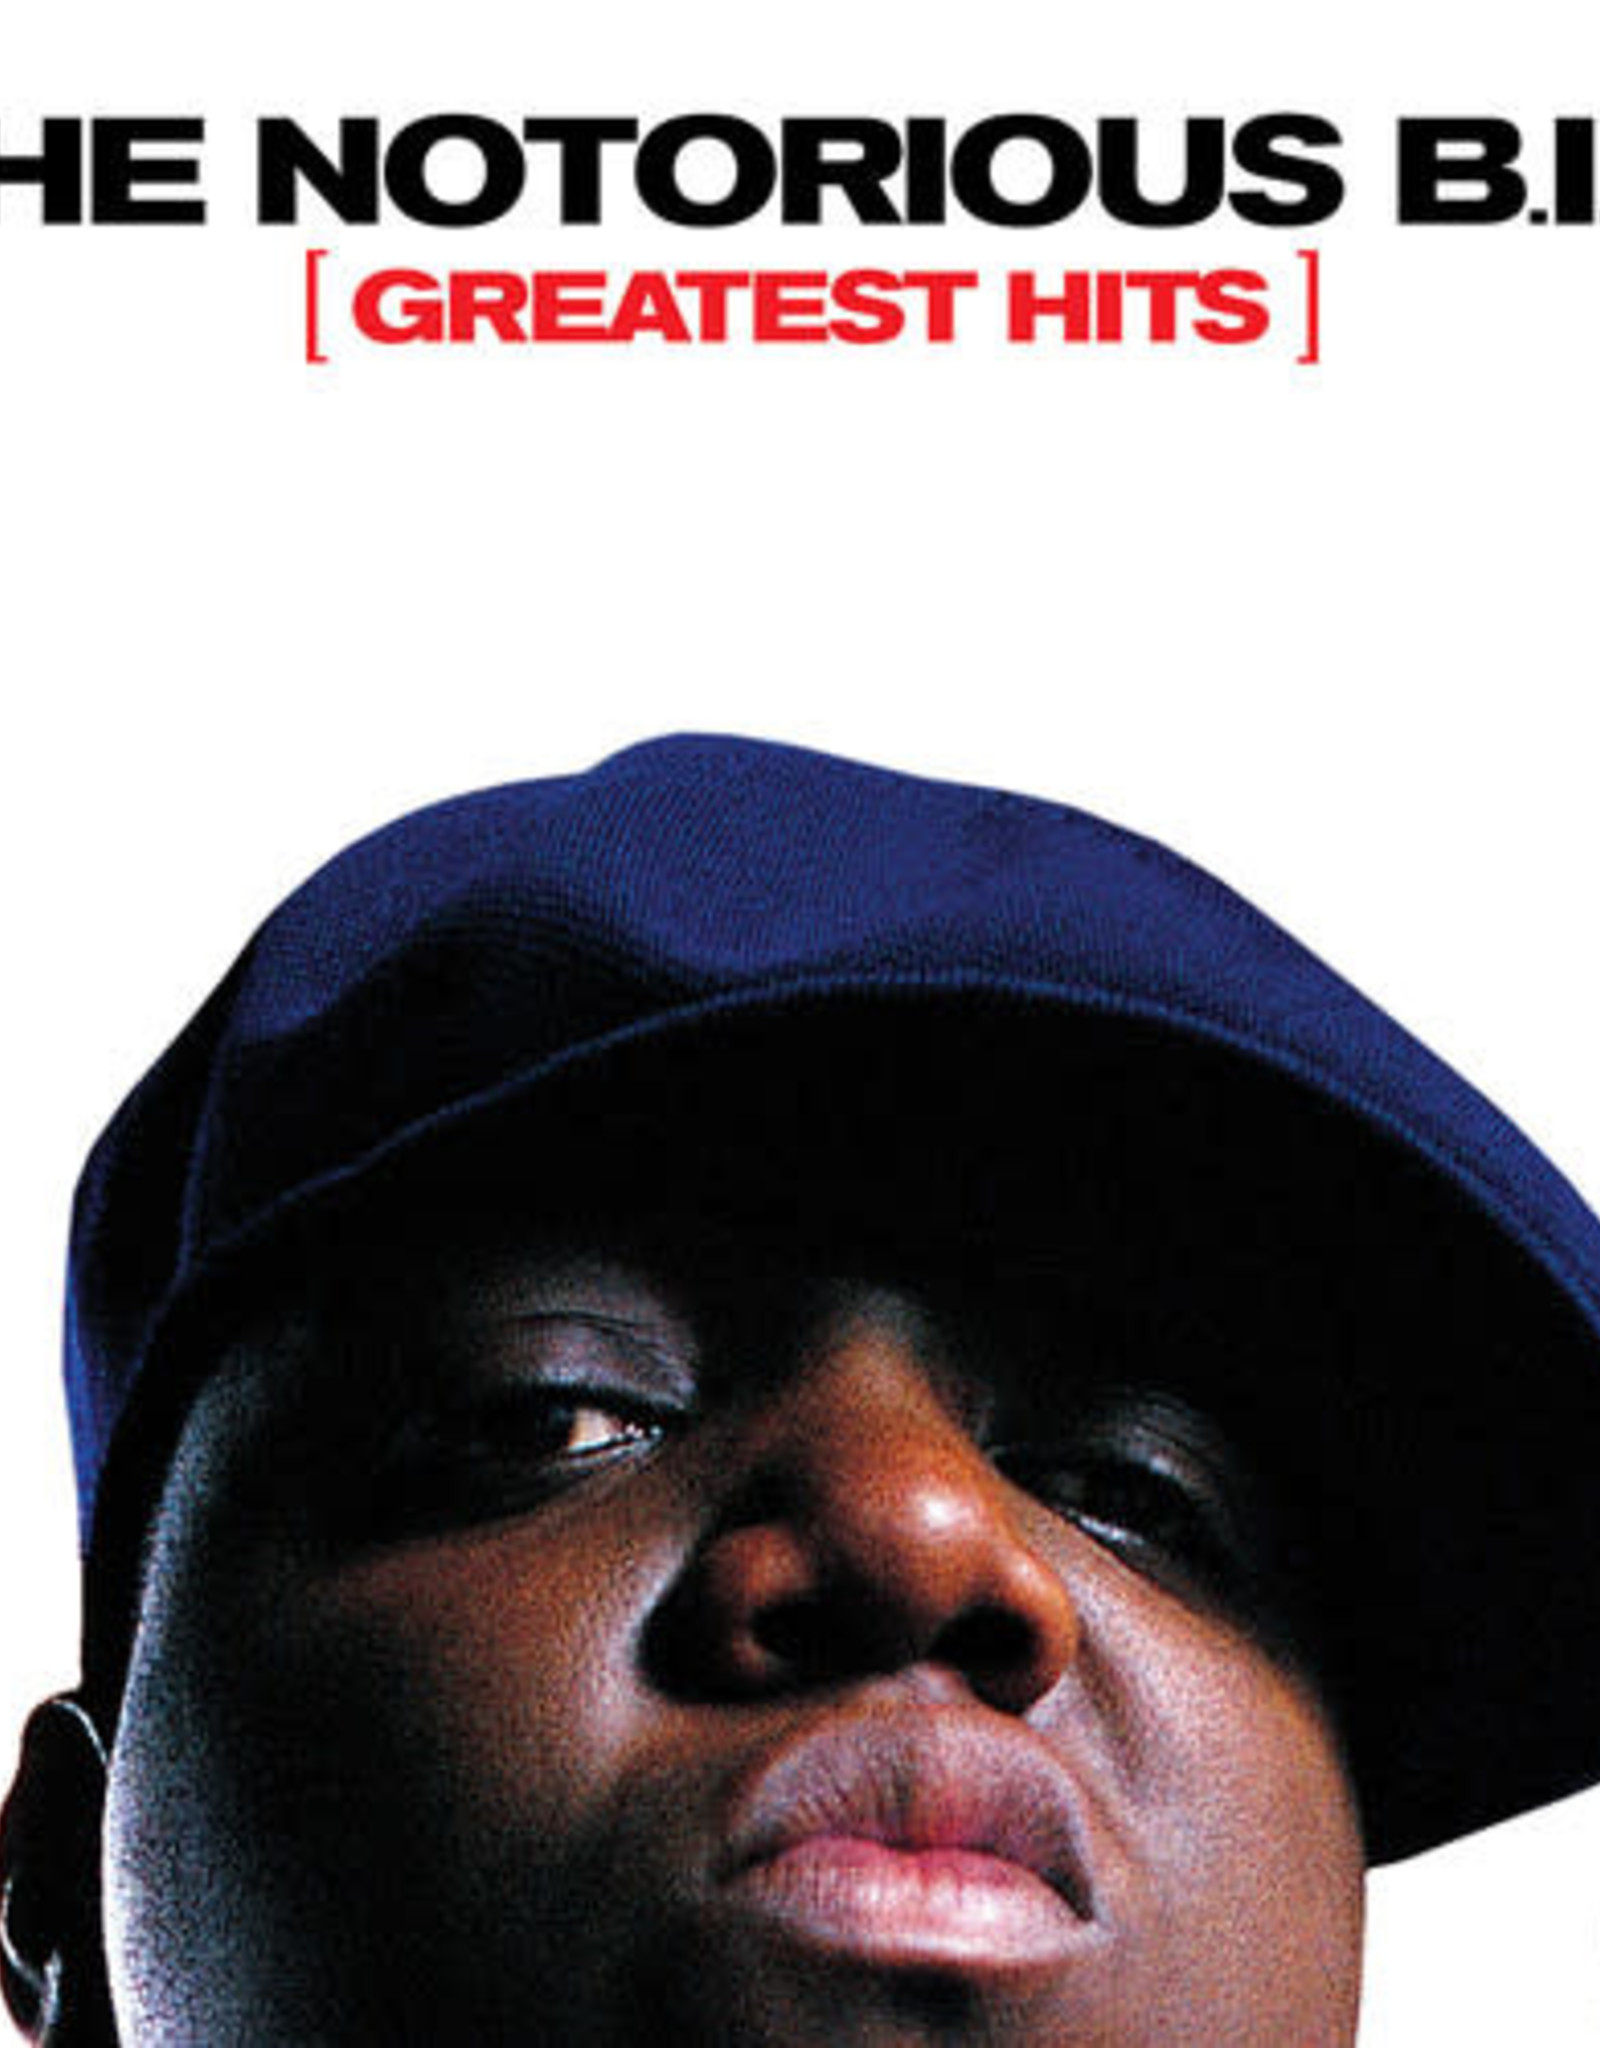 Notorious B.I.G. - Greatest Hits (2 Lp'S)